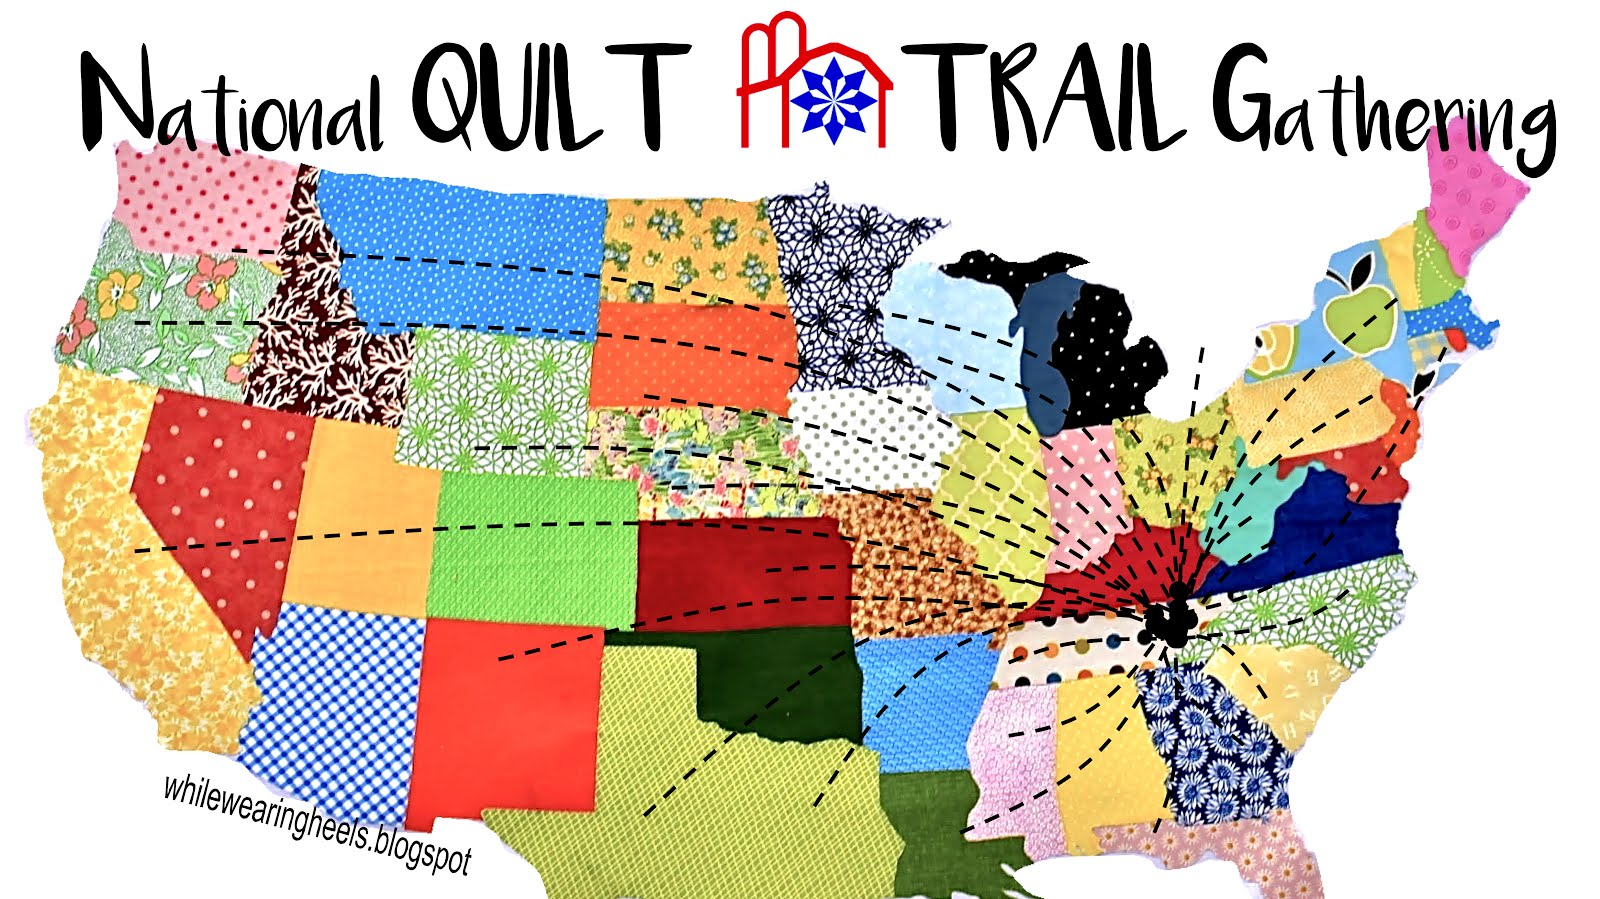 National QUILT TRAIL Gathering